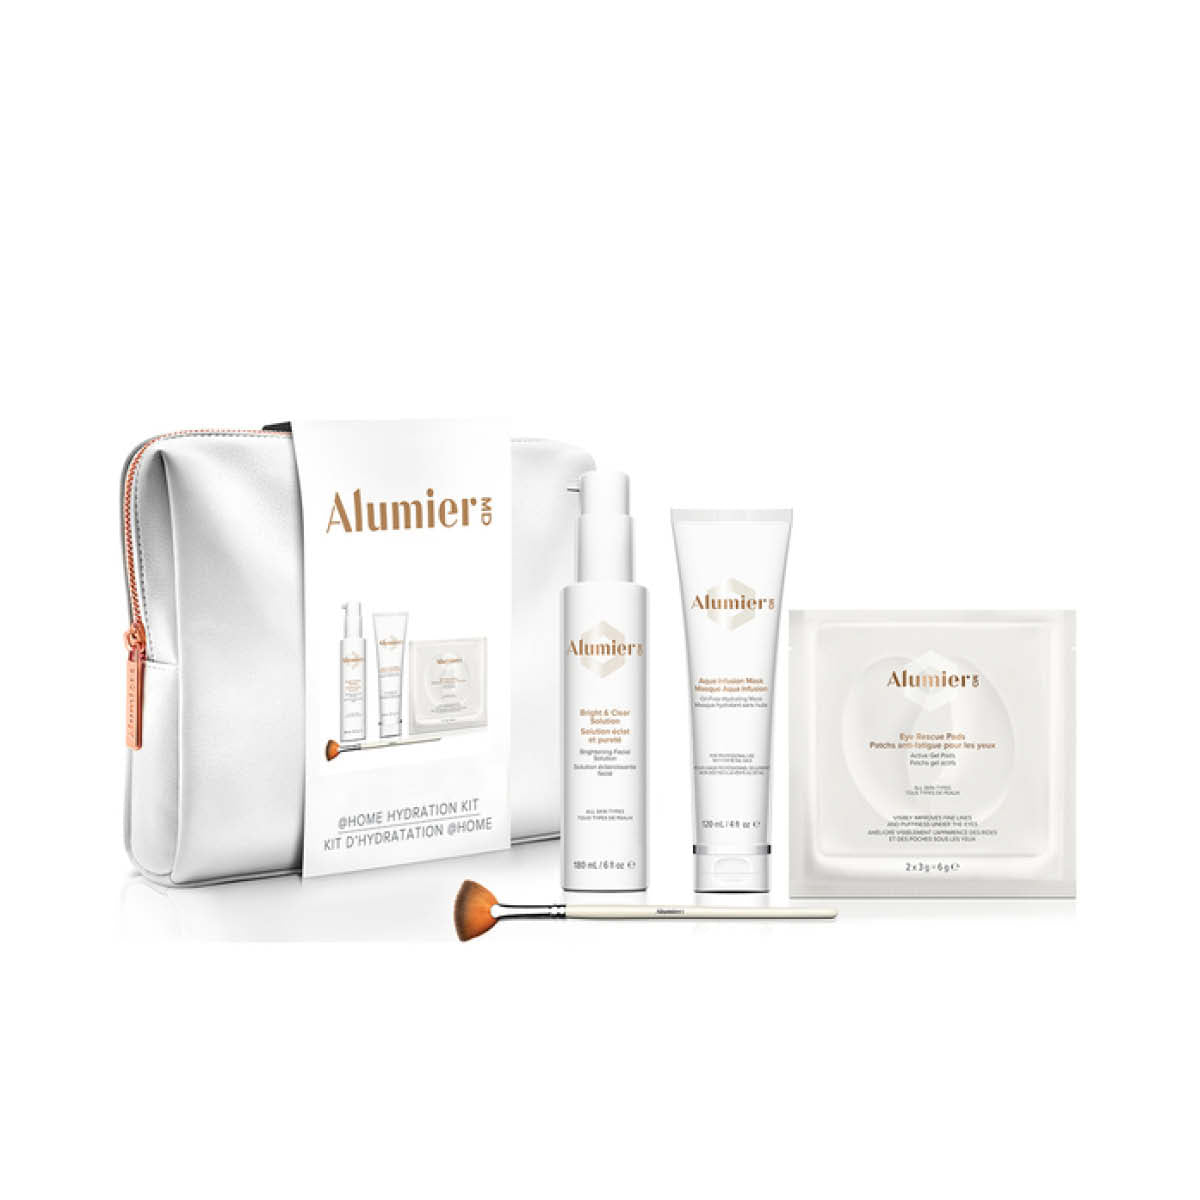 Alumier MD At Home Hydration Kit